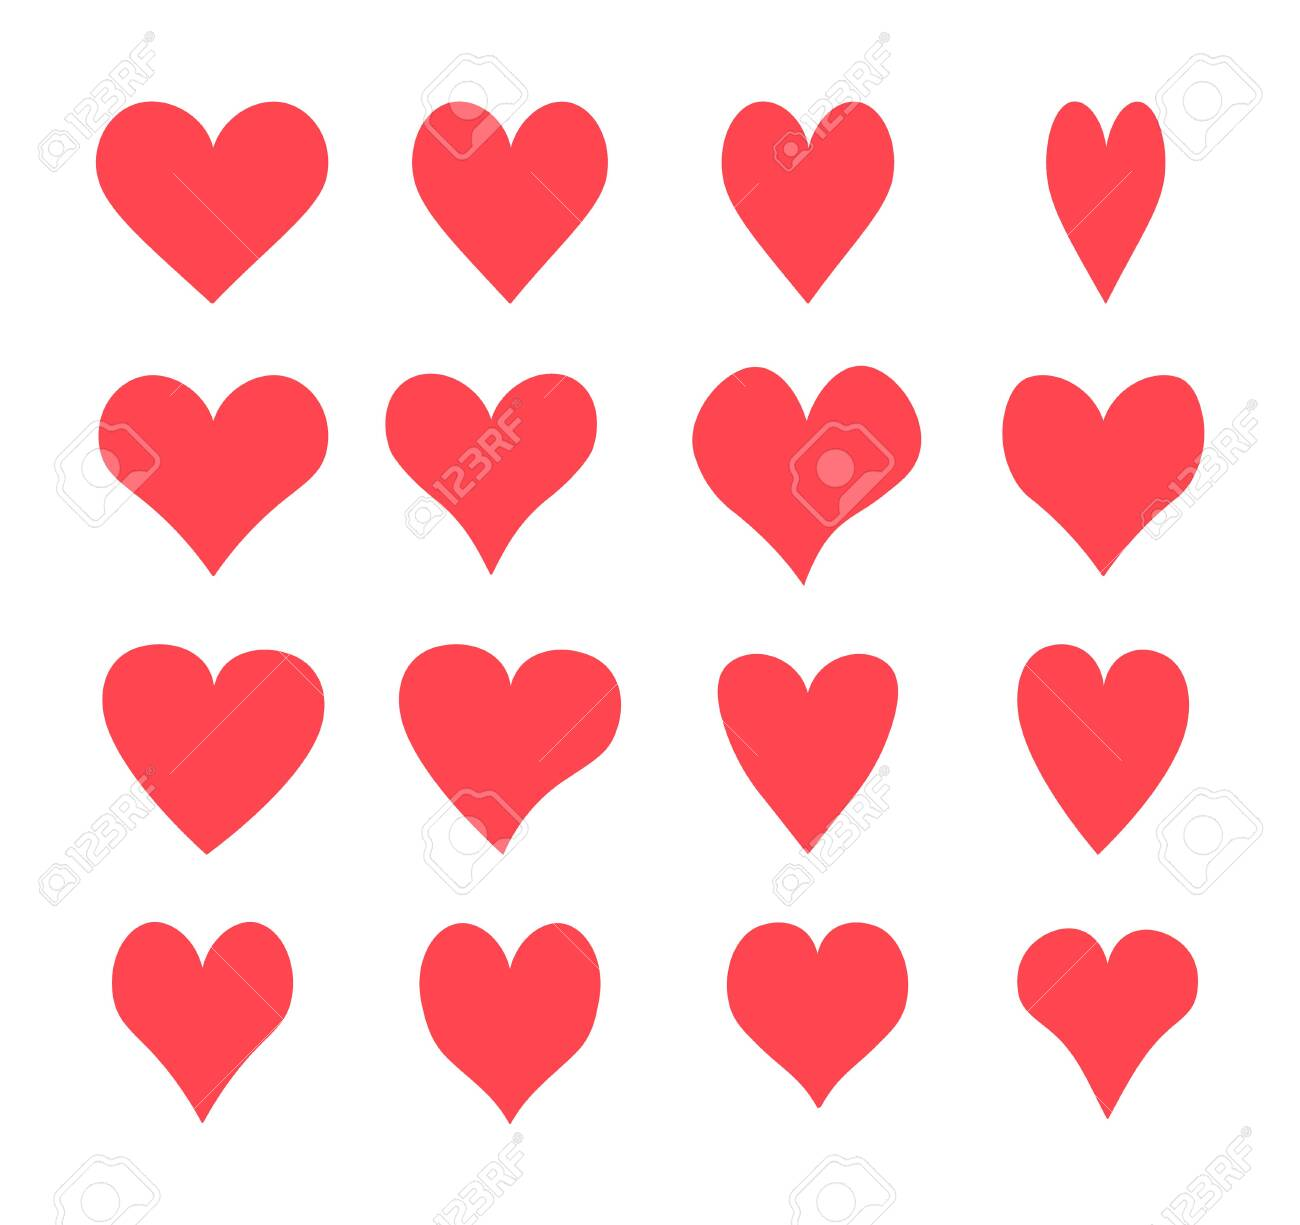 A set of hearts, Vector icons - 134268327